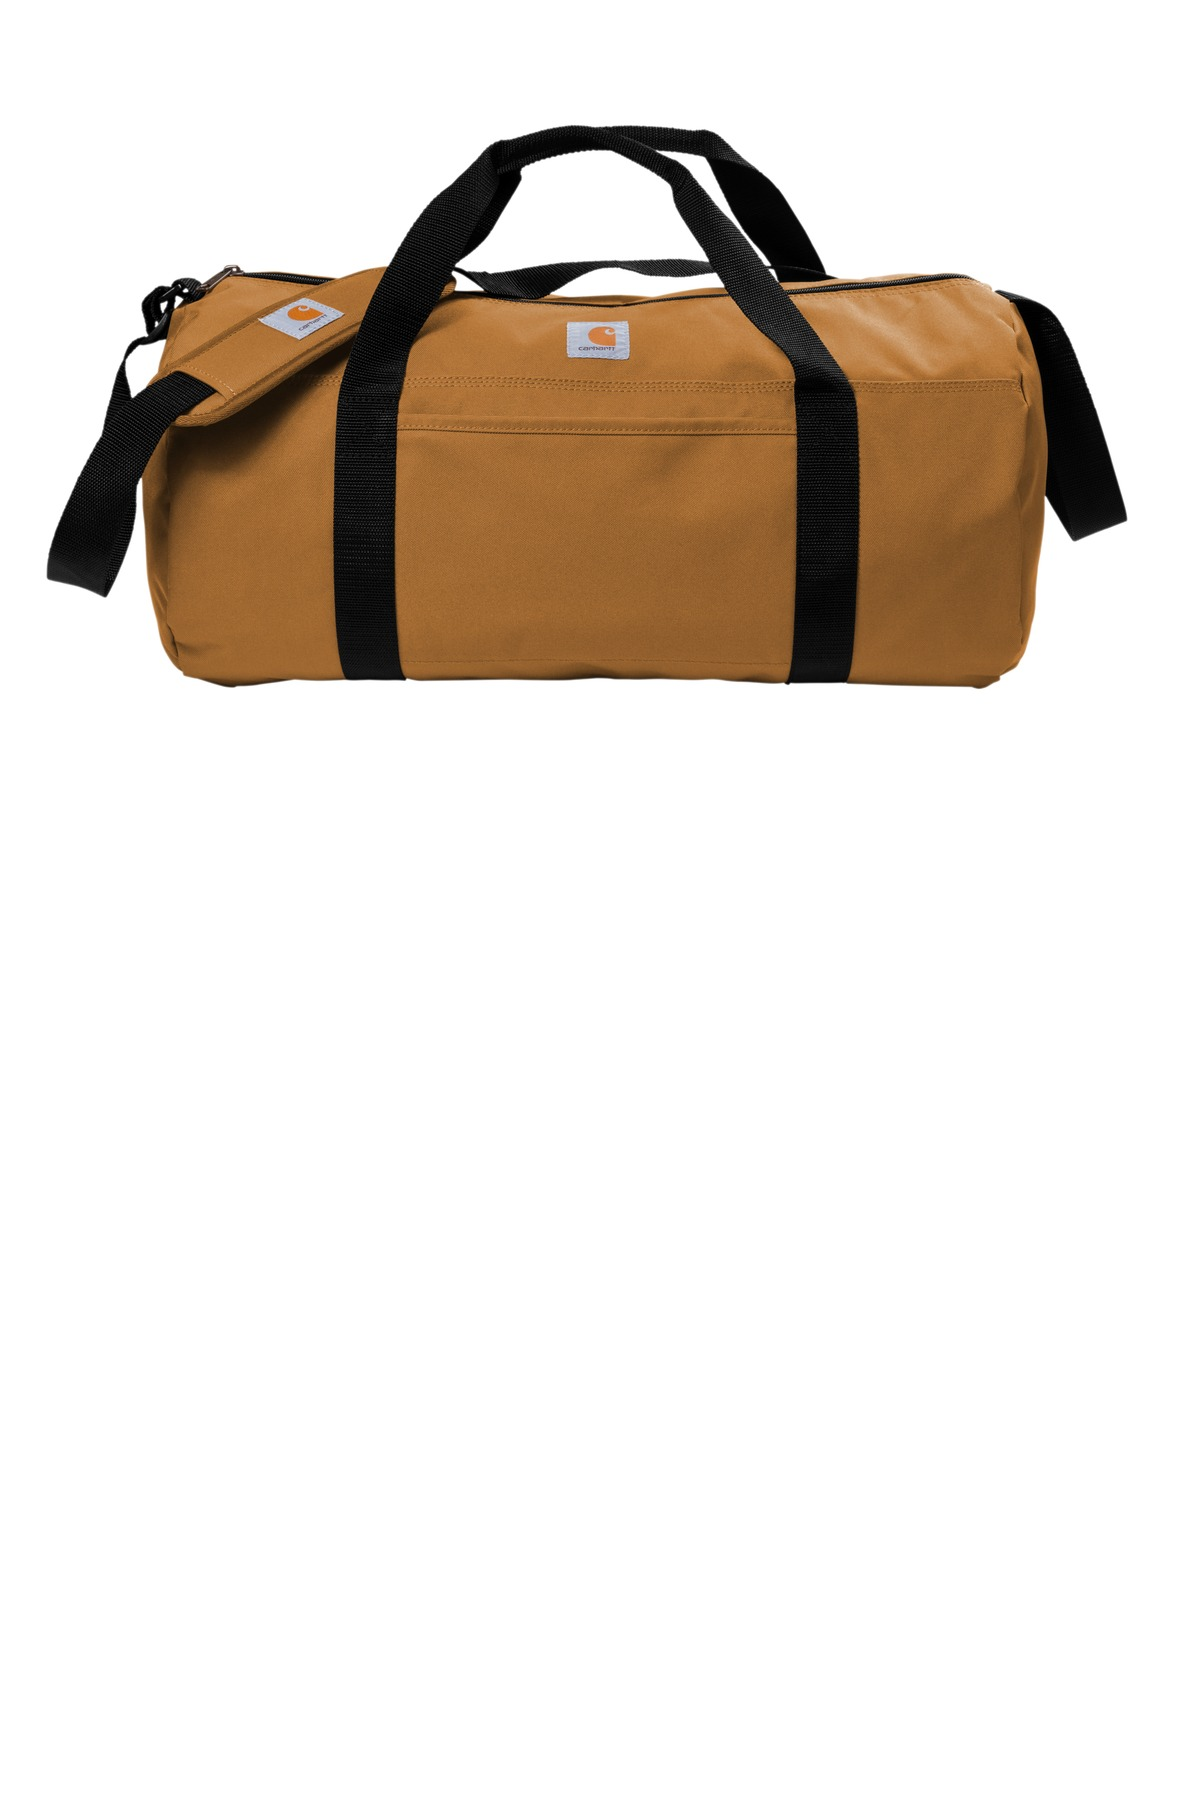 Carhartt ®   Canvas Packable Duffel with Pouch. CT89105112 - Carhartt Brown